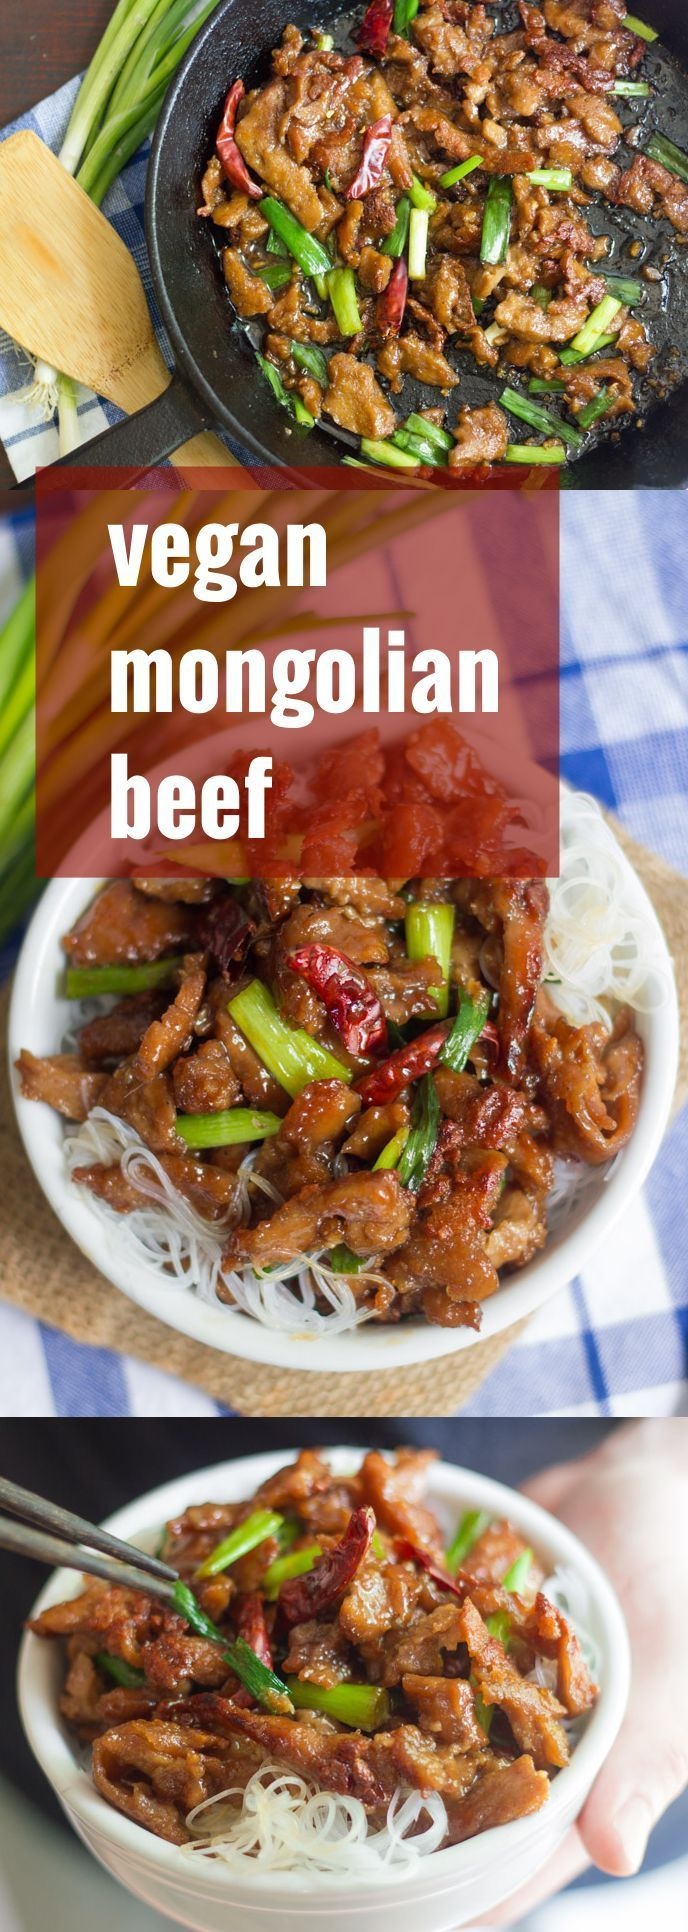 Pan-fried to a crisp and drenched in a sweet, savory, sticky sauce, this vegan…